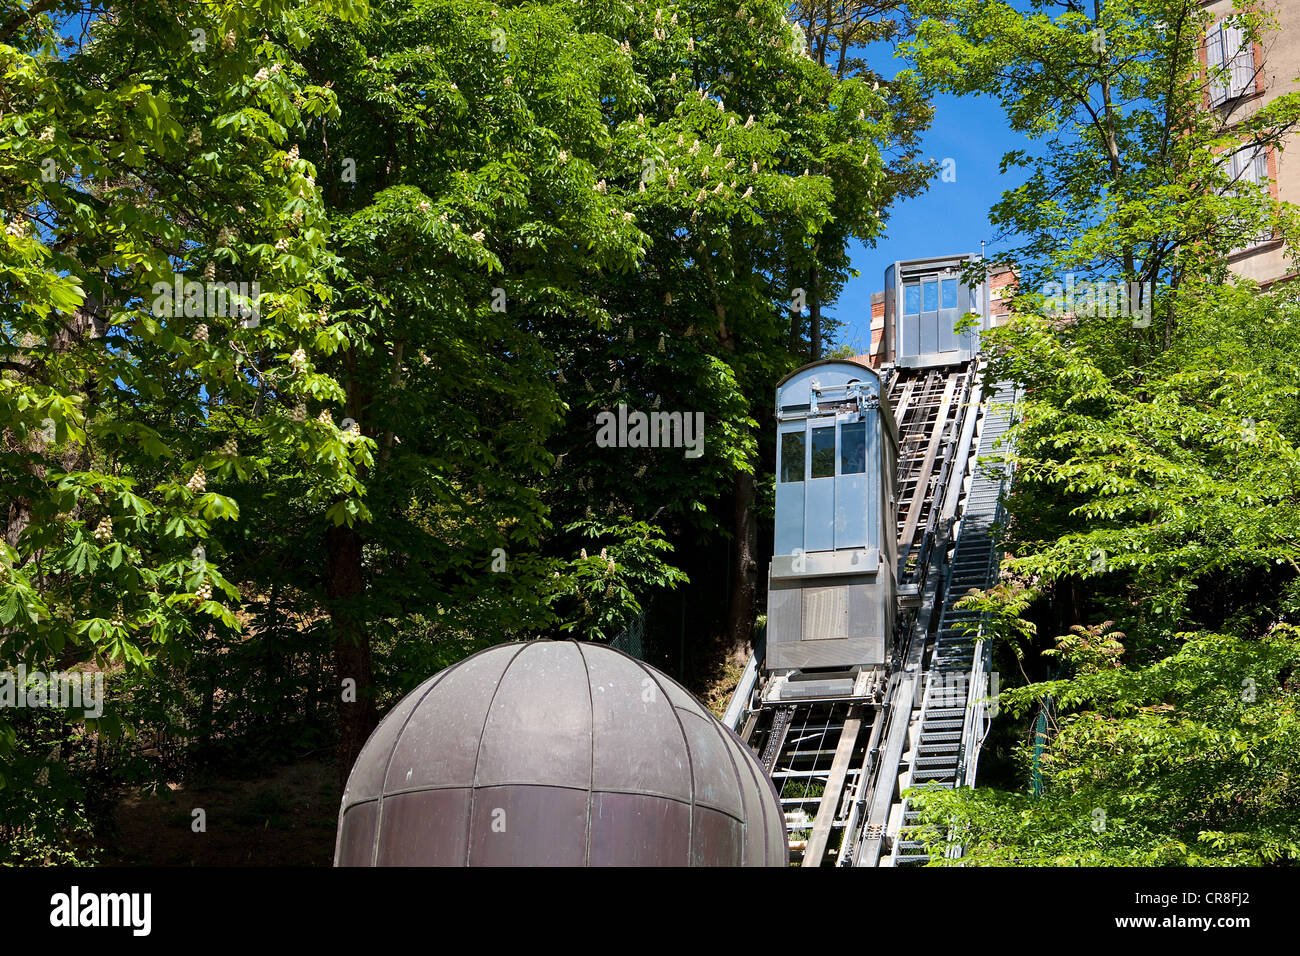 France, Tarn et Garonne, Montauban, the old lift in the Jardin des Plantes - Stock Image